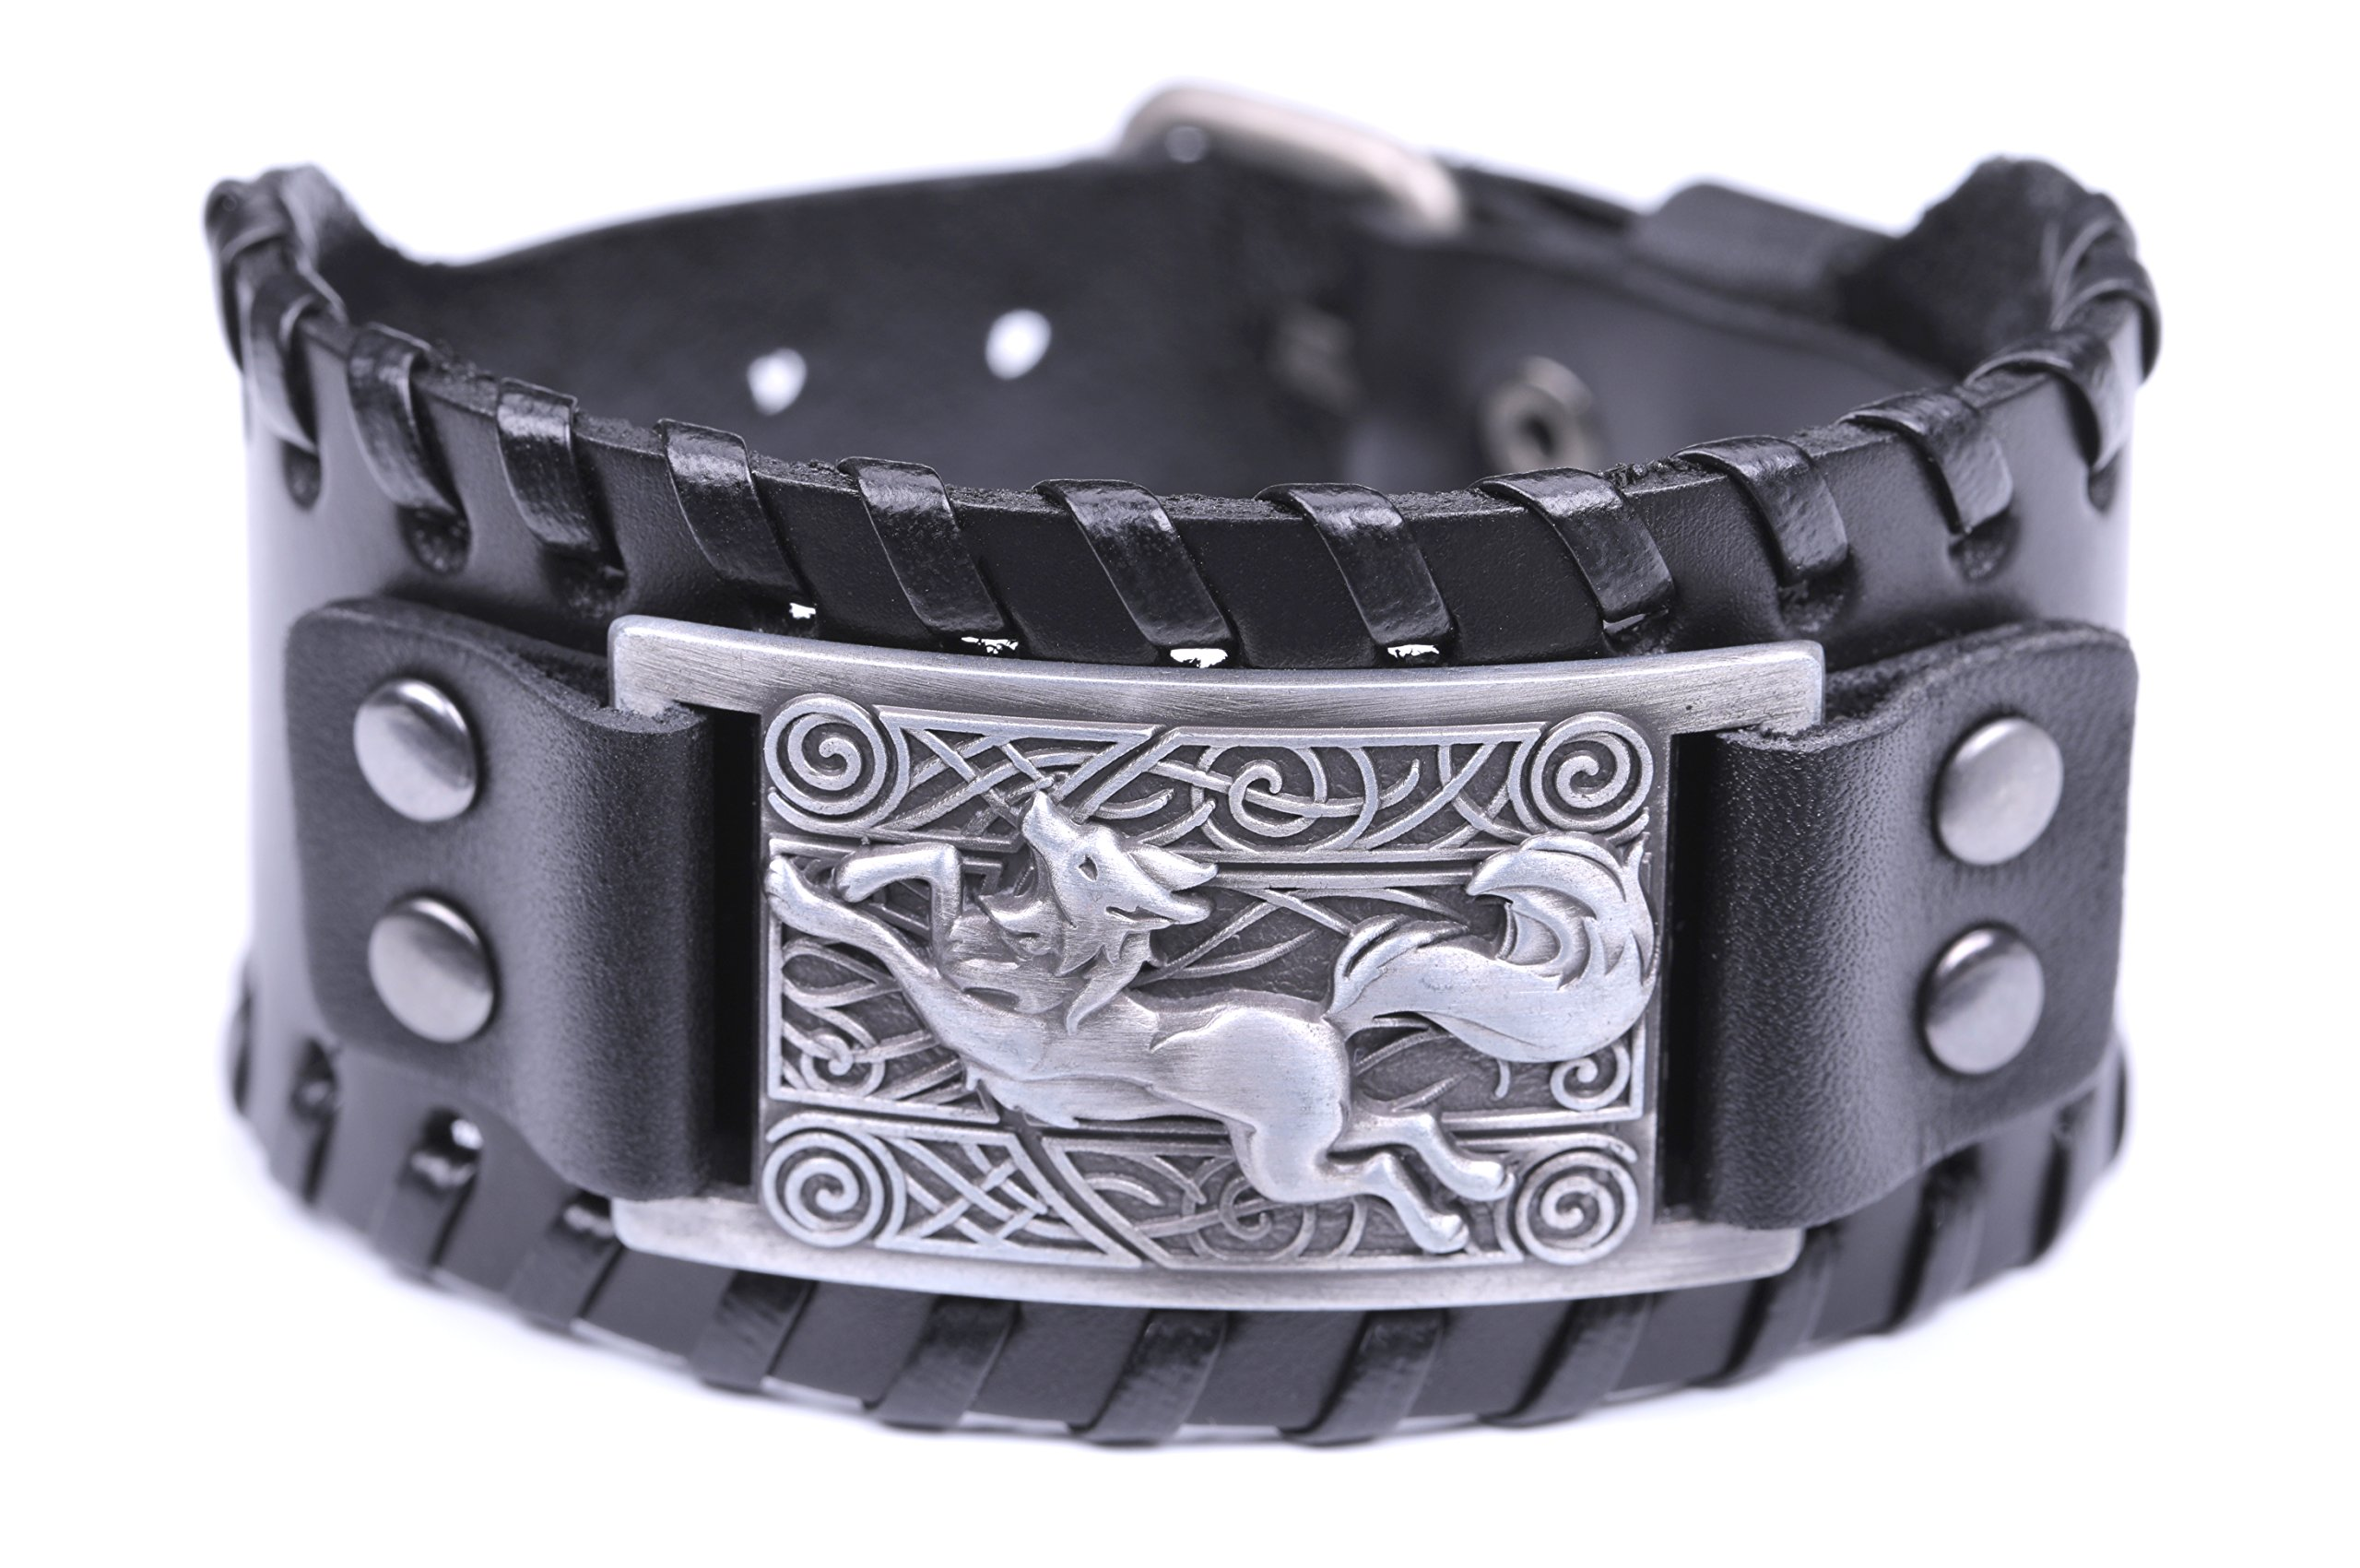 VASSAGO Pagan Nordic Viking Wolf Celtic Knot Metal Cuff New Style Bracelet Spiritual Animal for Men/Women Gift (Black Leather, Antique Silver)